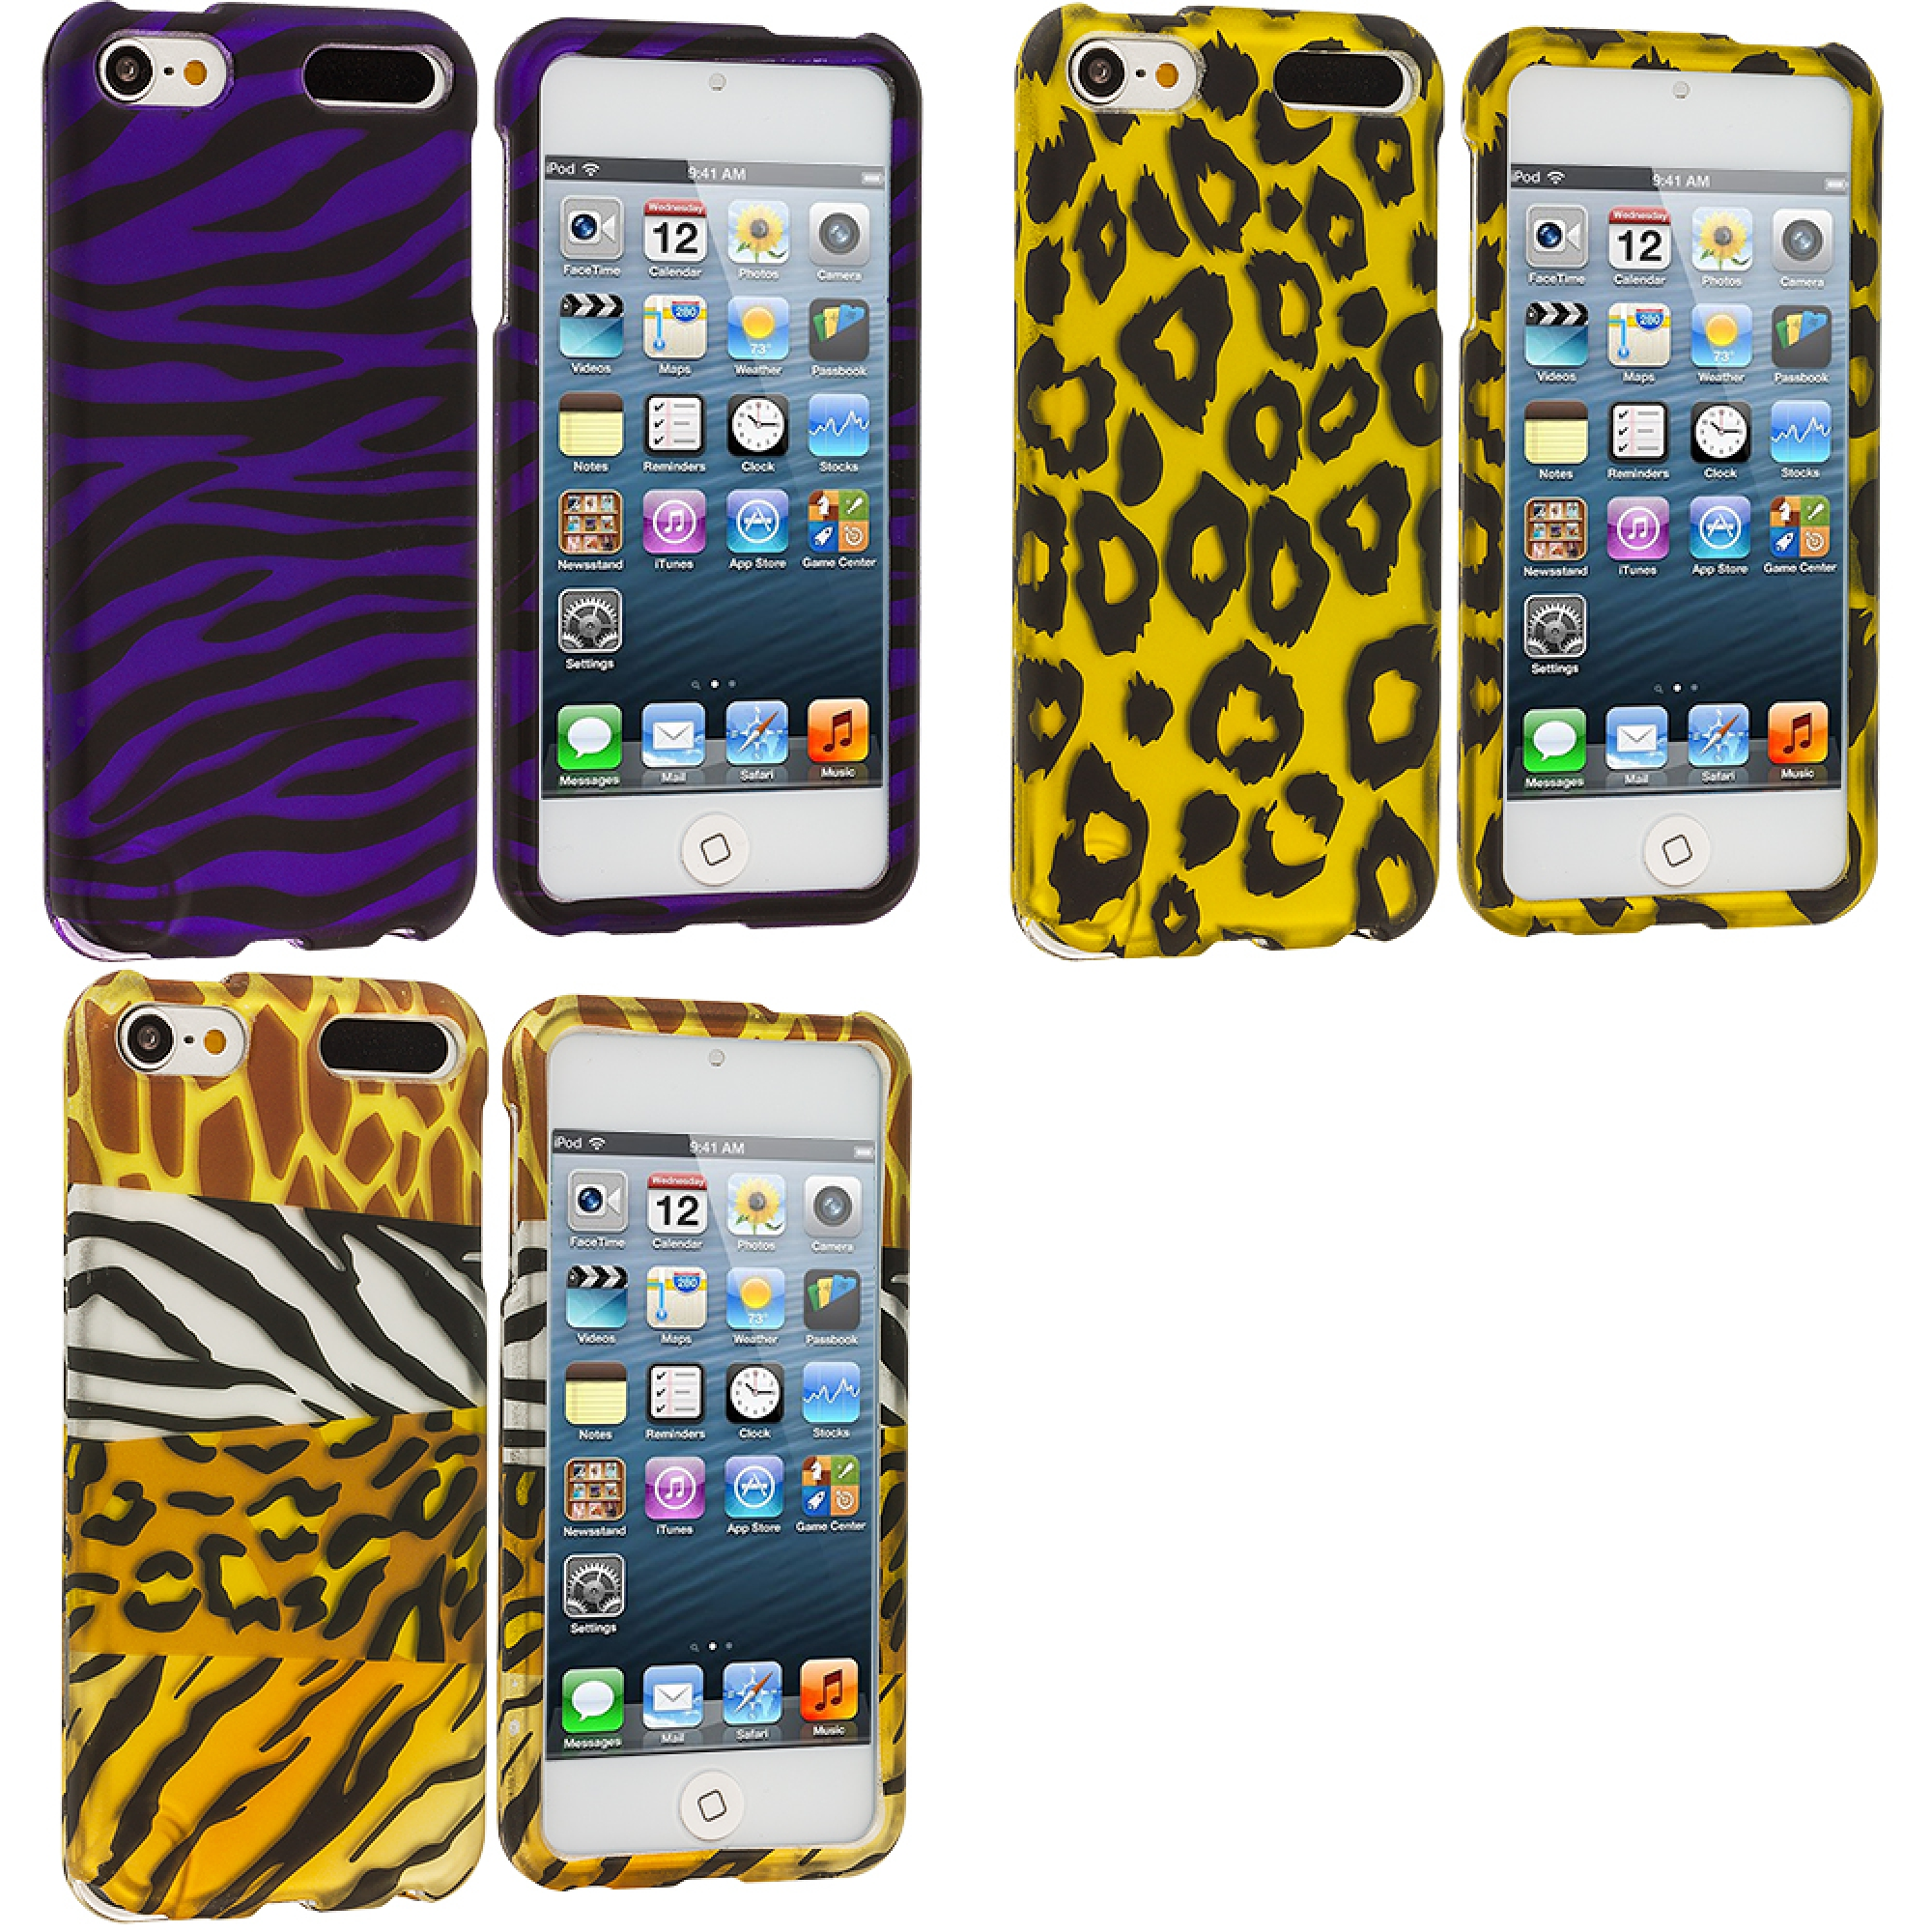 Apple iPod Touch 5th 6th Generation 3 in 1 Combo Bundle Pack - Leopard / Purple Zebra Hard Rubberized Design Case Cover